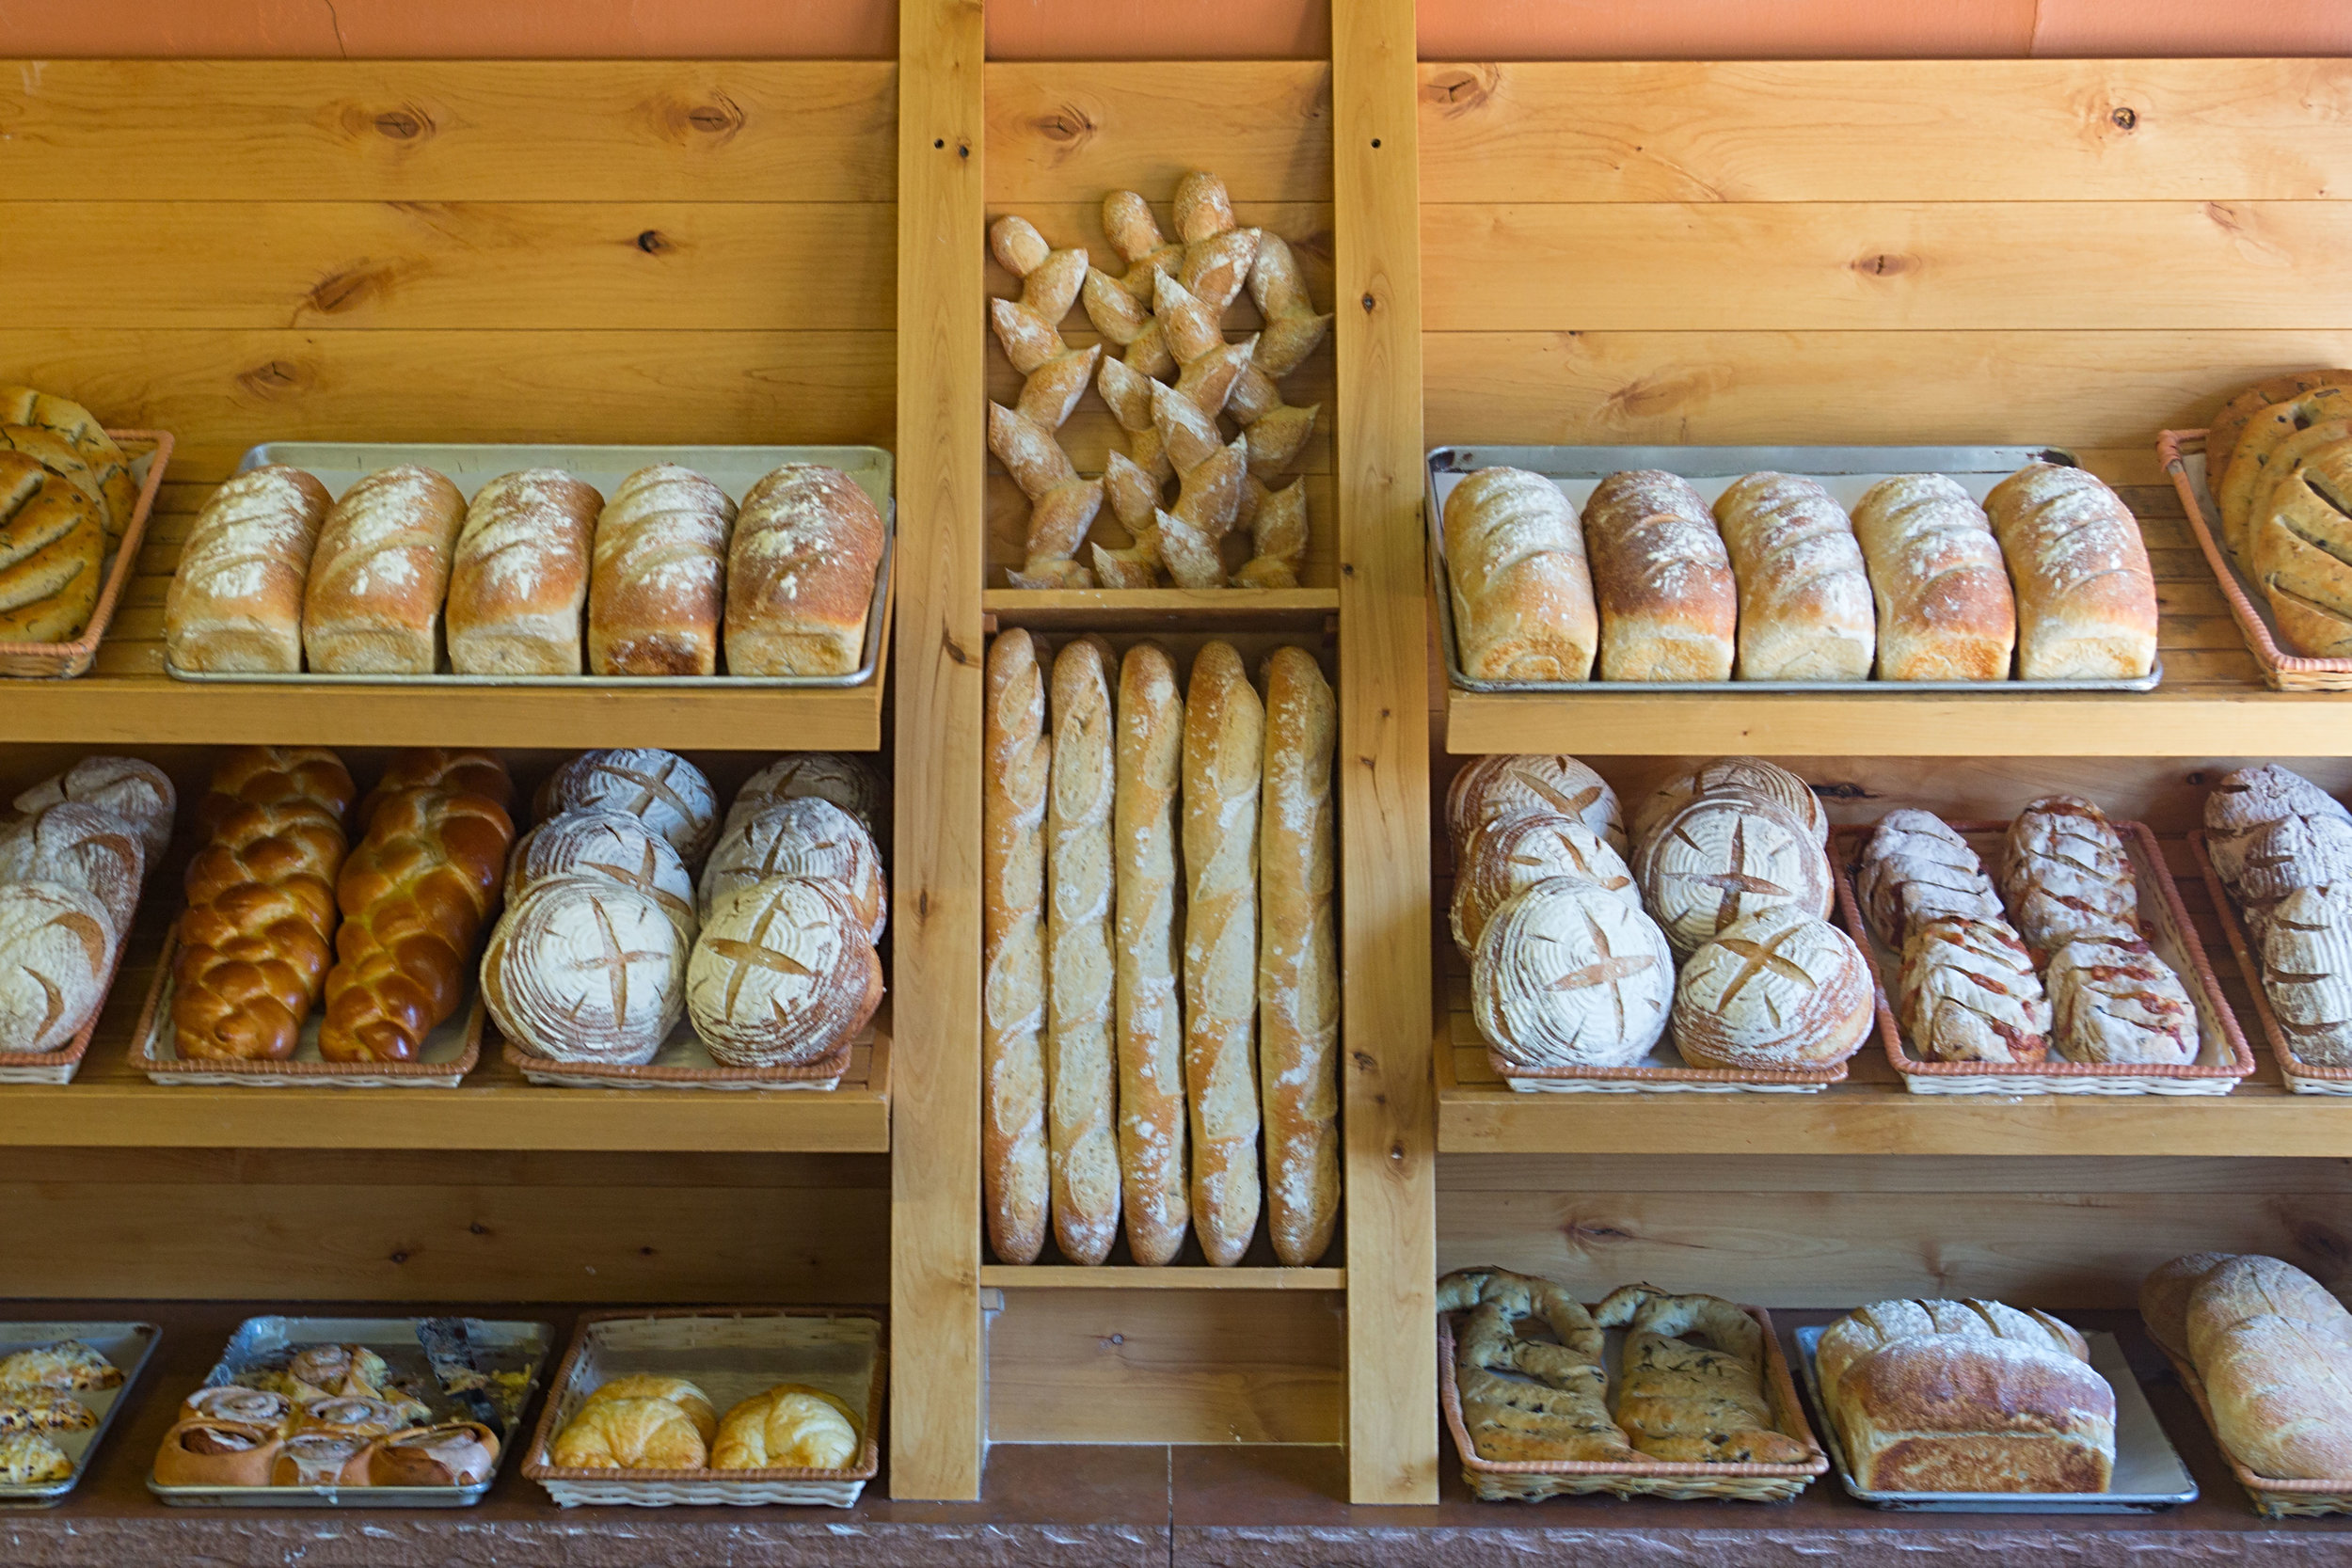 Bakery_bread rack.jpg